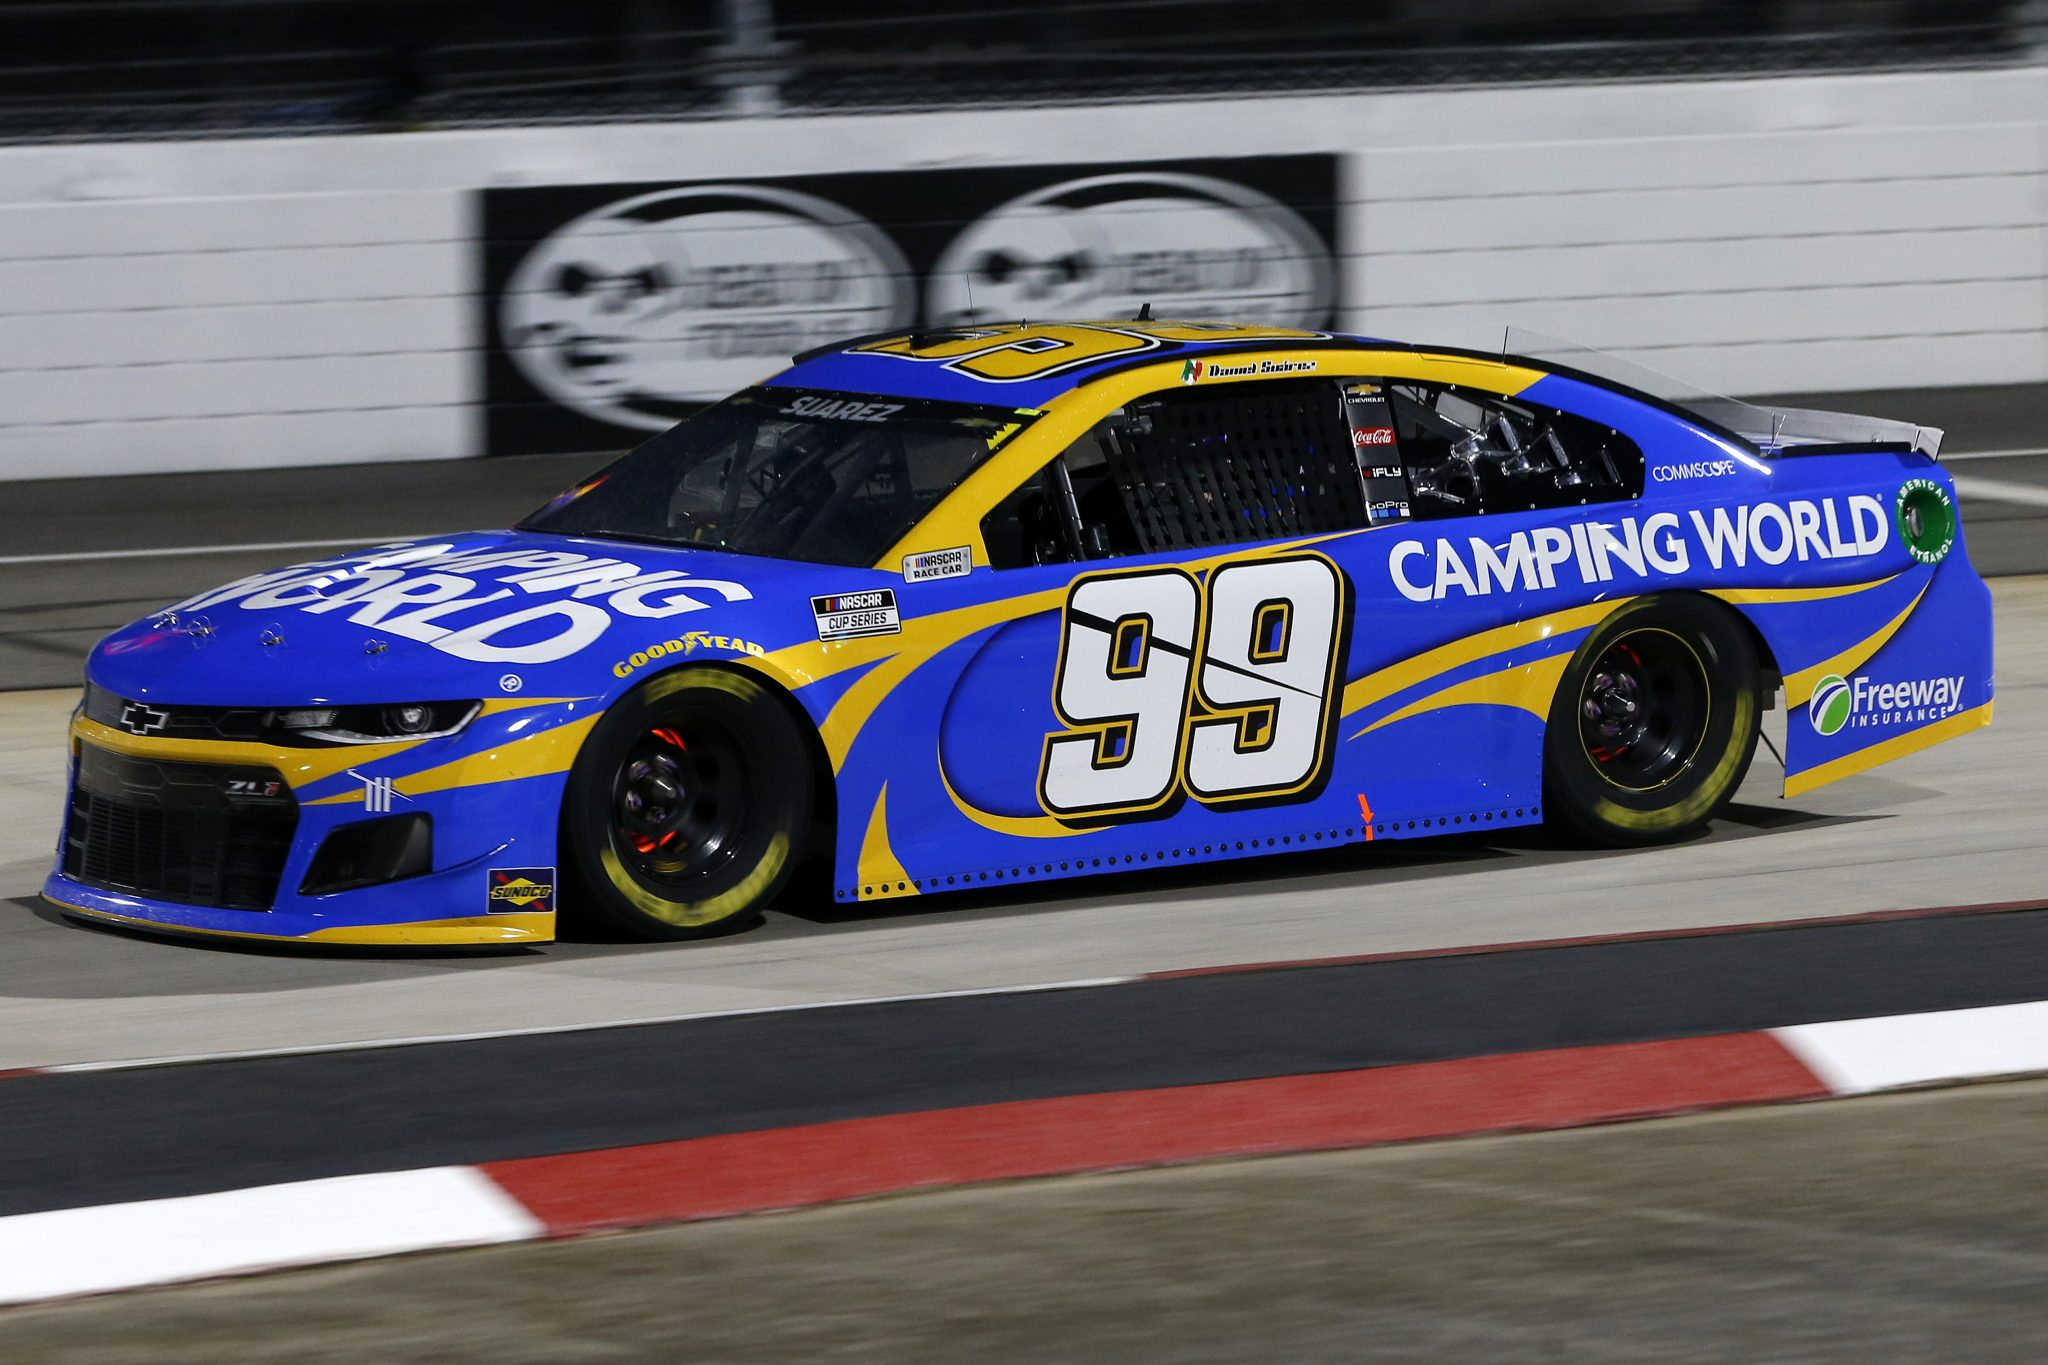 MARTINSVILLE, VIRGINIA - APRIL 10: Daniel Suarez, driver of the #99 Camping World Chevrolet, drives during the NASCAR Cup Series Blue-Emu Maximum Pain Relief 500 at Martinsville Speedway on April 10, 2021 in Martinsville, Virginia. (Photo by Brian Lawdermilk/Getty Images) | Getty Images